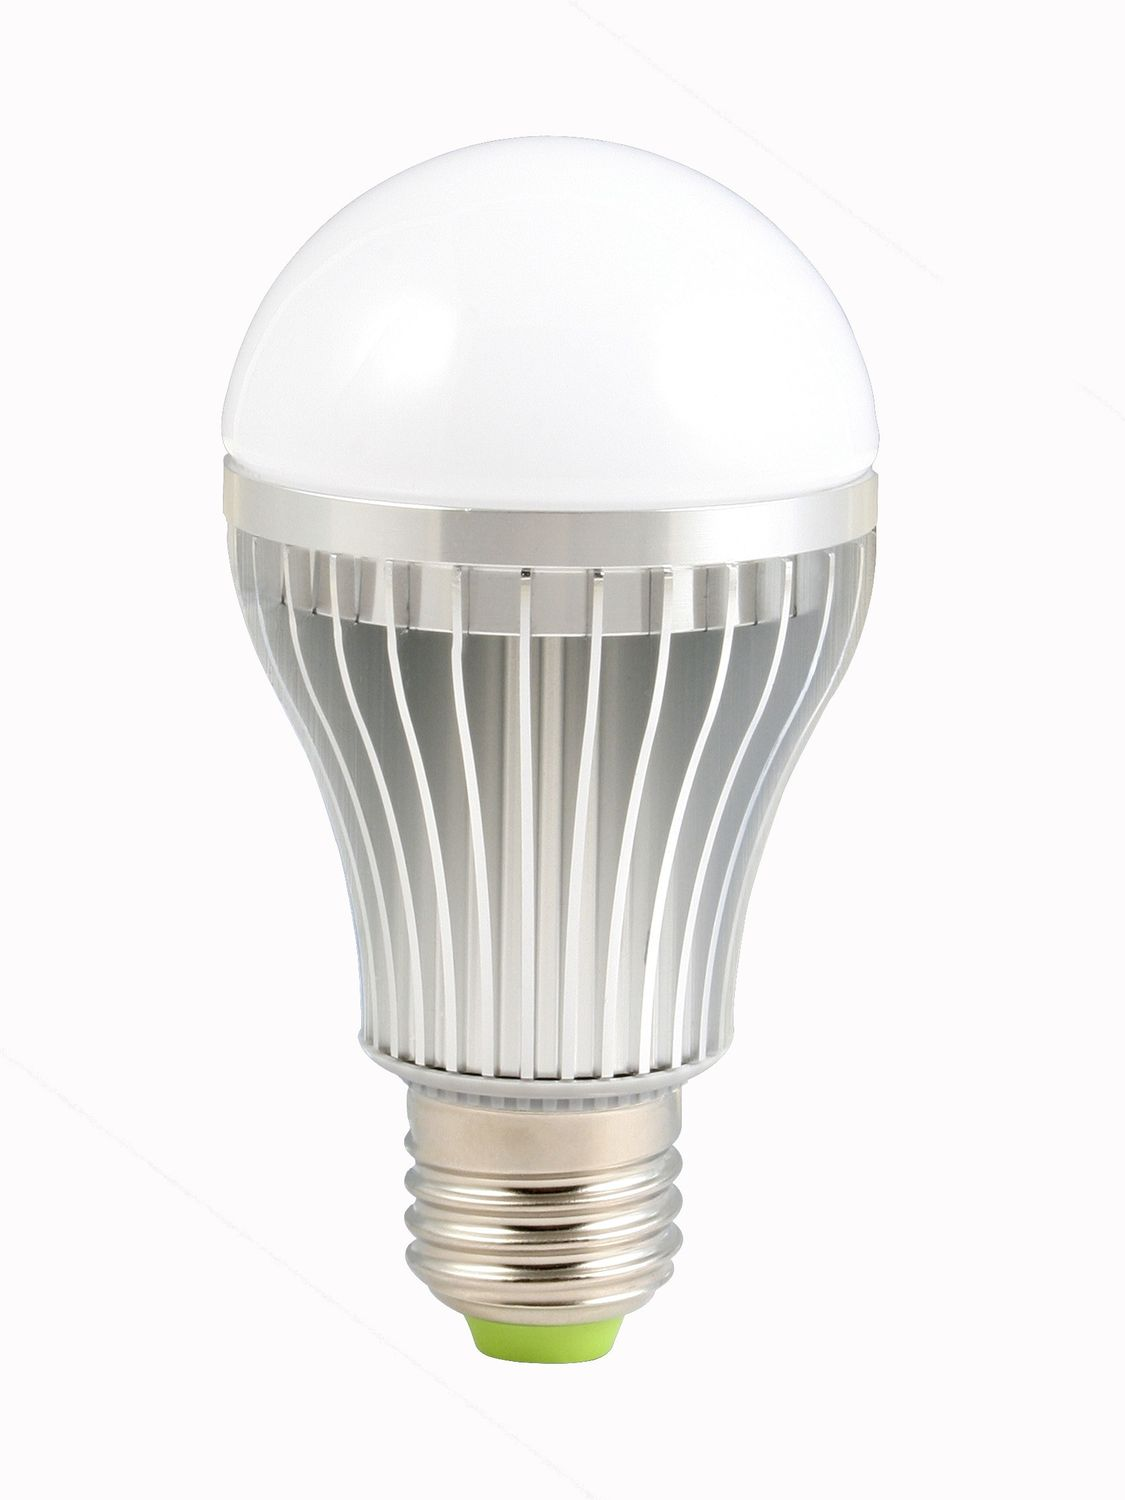 Solar Power Info for small off grid system  Led-bulb-62144-2323921